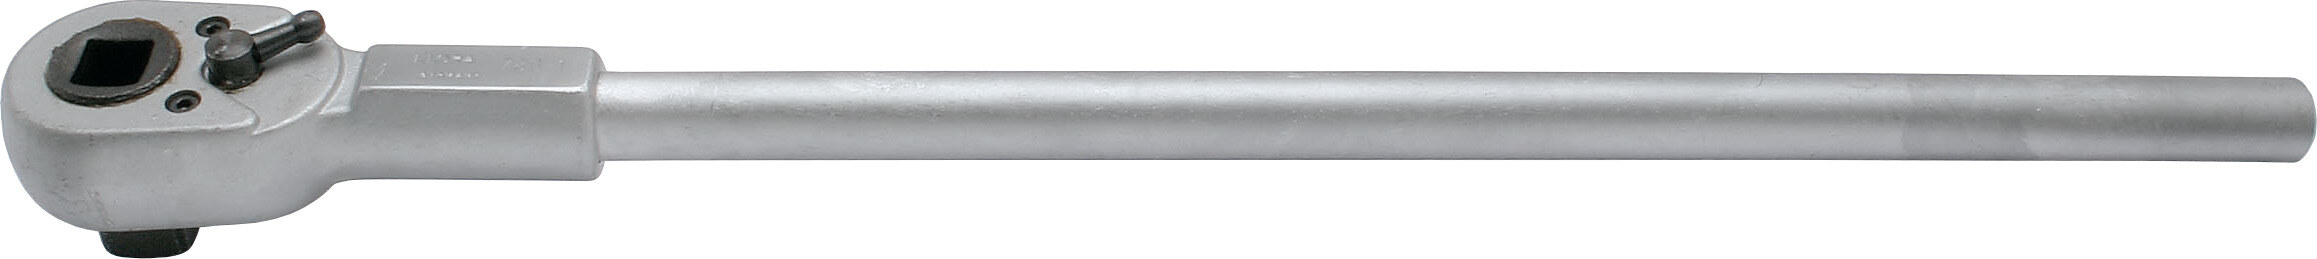 ELORA Reversible Ratchet 1